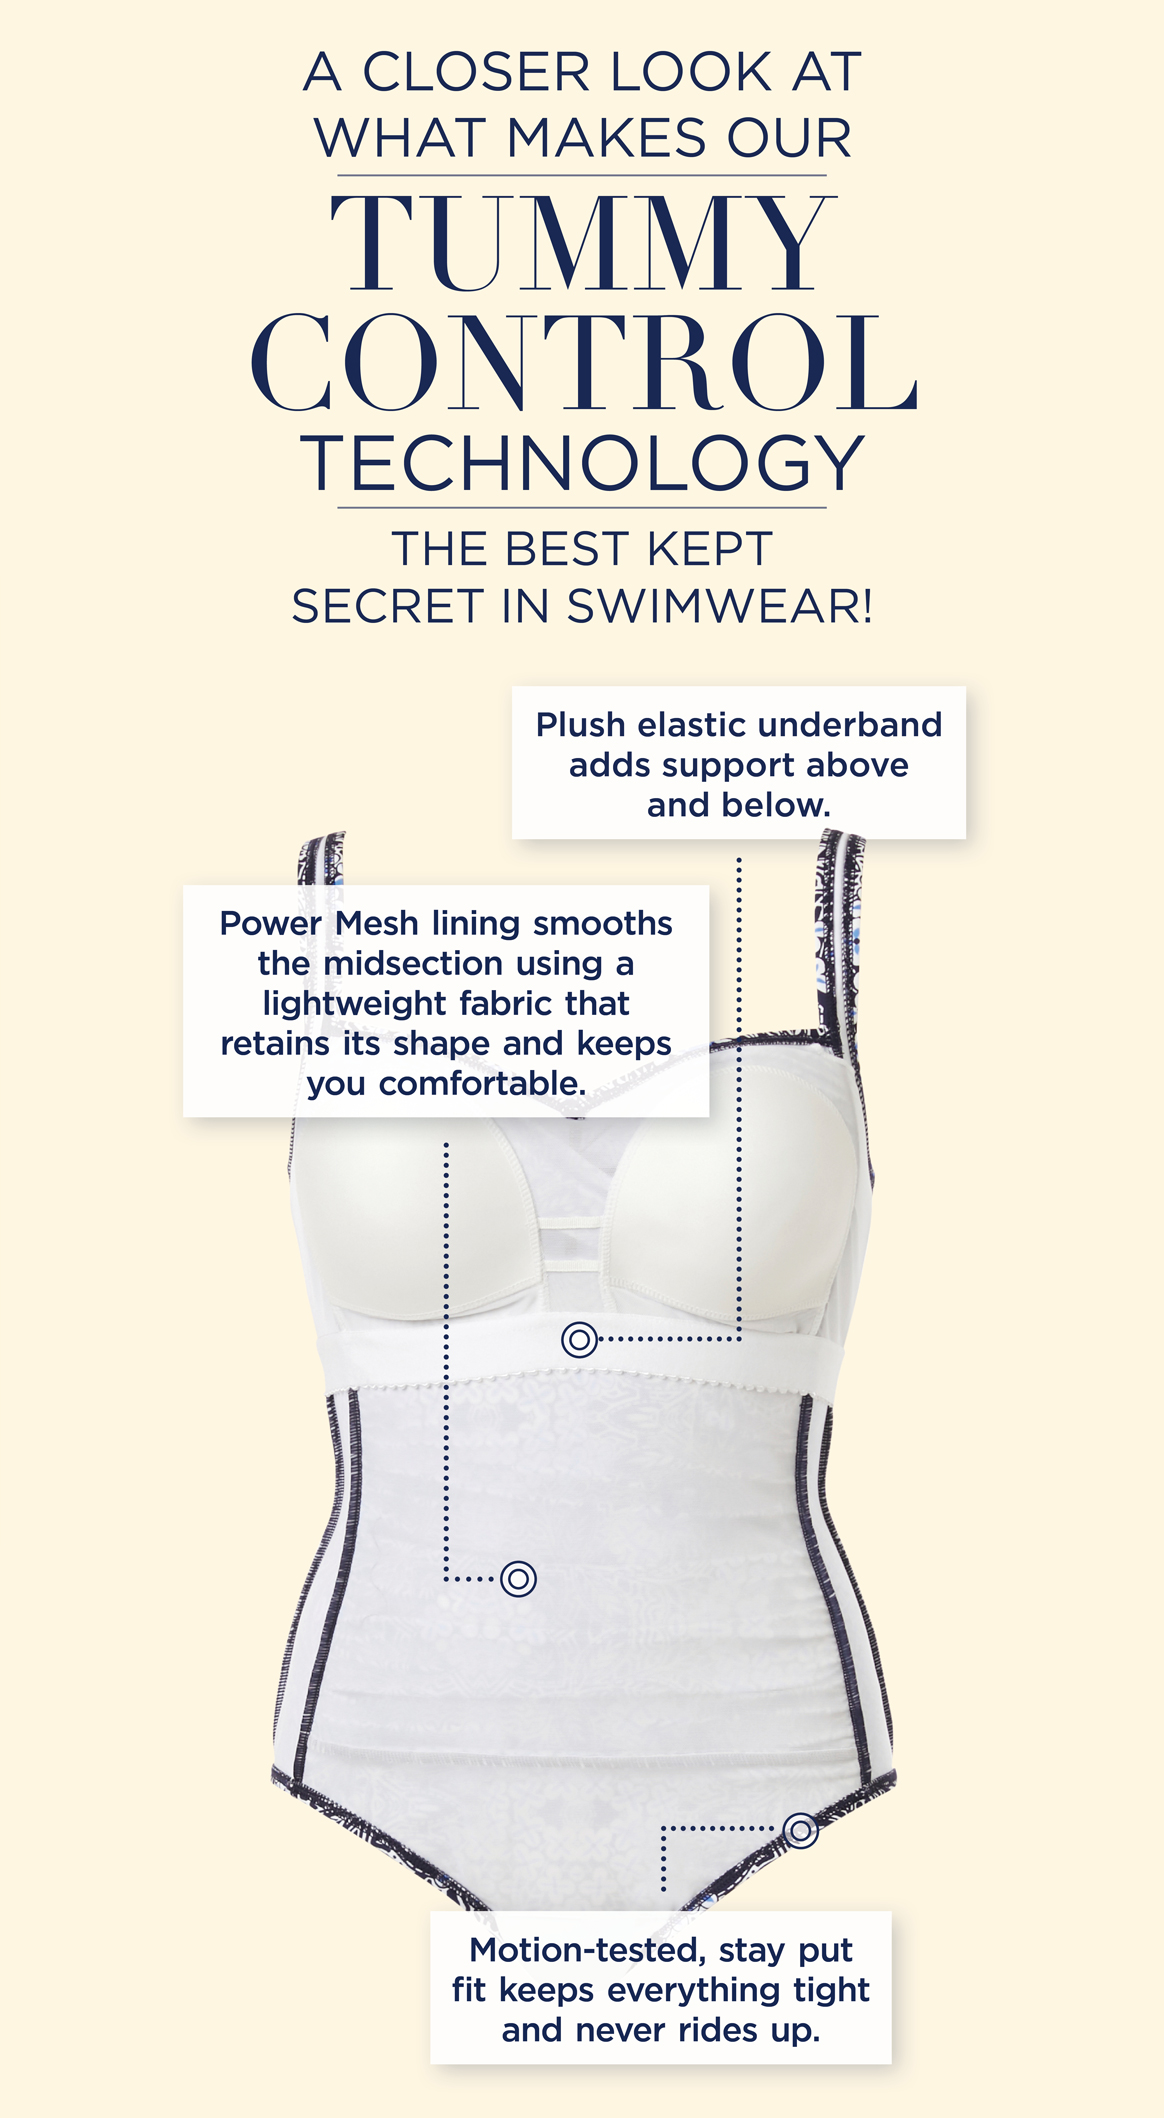 A CLOSER LOOK AT WHAT MAKES OUR TUMMY CONTROL TECHNOLOGY THE BEST KEPT SECRET IN SWIMWEAR